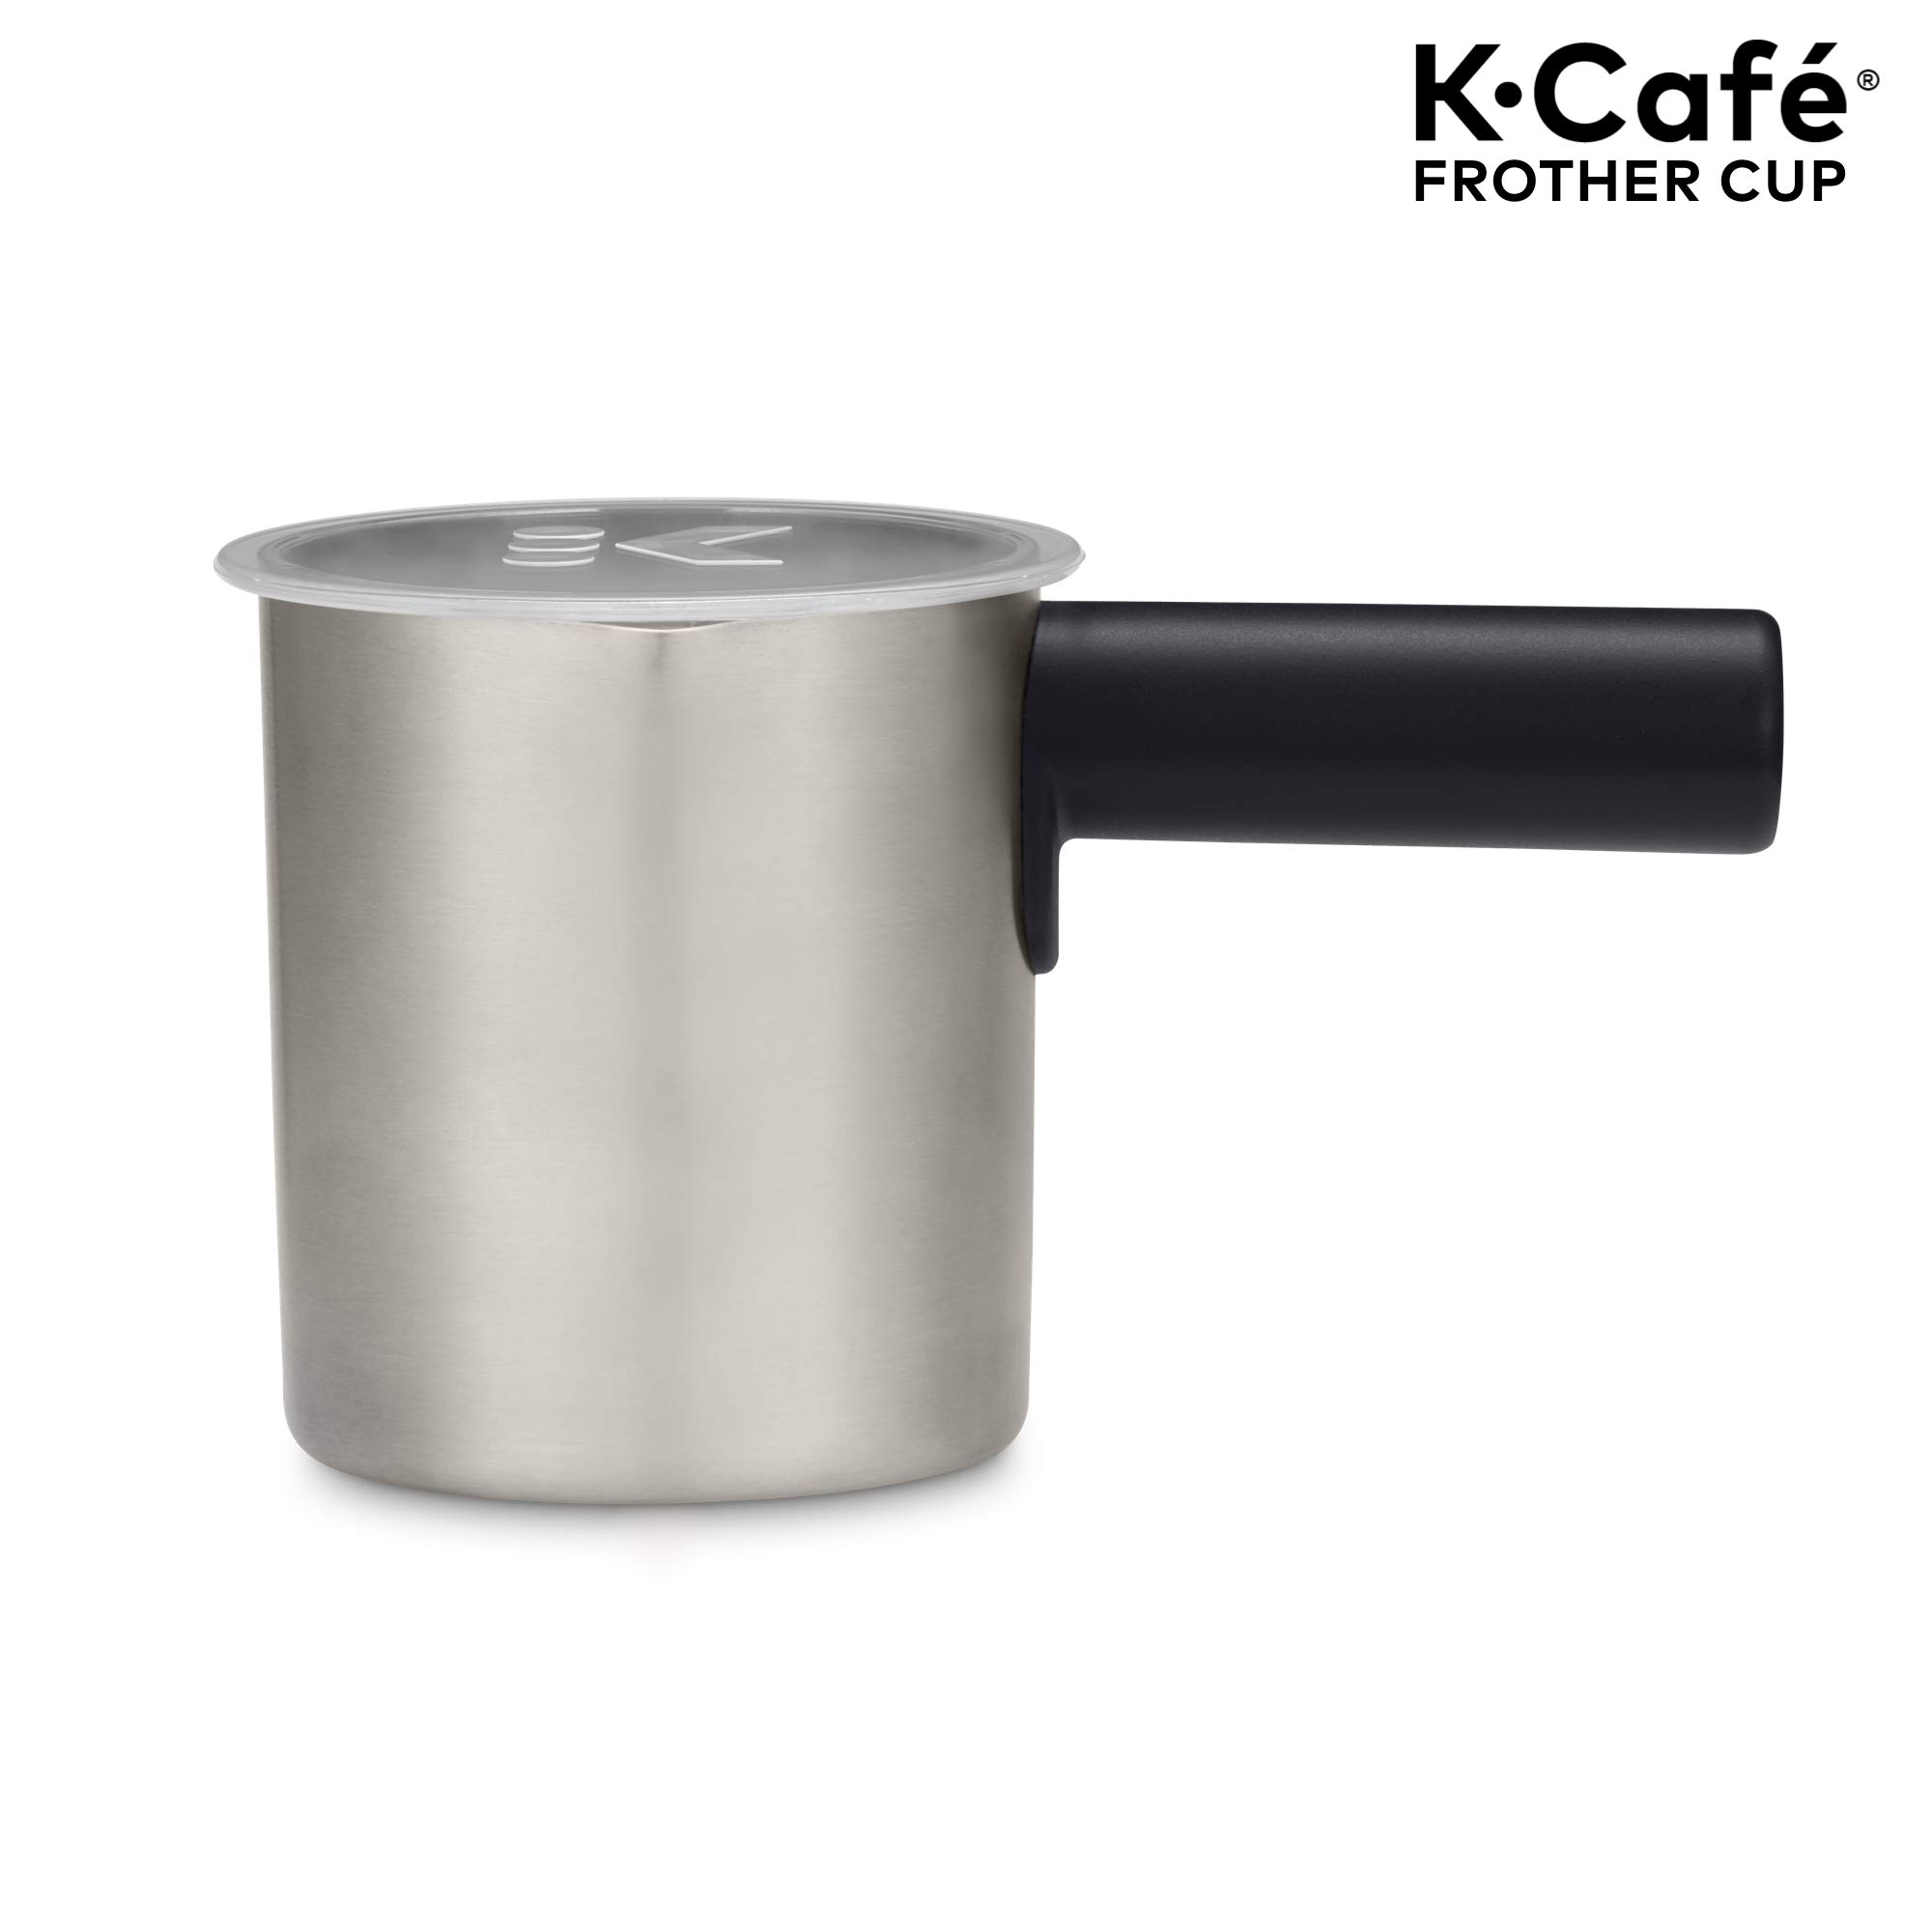 Keurig K-Café Milk Frother, Works with all Dairy and Non-Dairy Milk, Hot and Cold Frothing, Compatible with Keurig K-Café Coffee Makers Only, Dark Charcoal